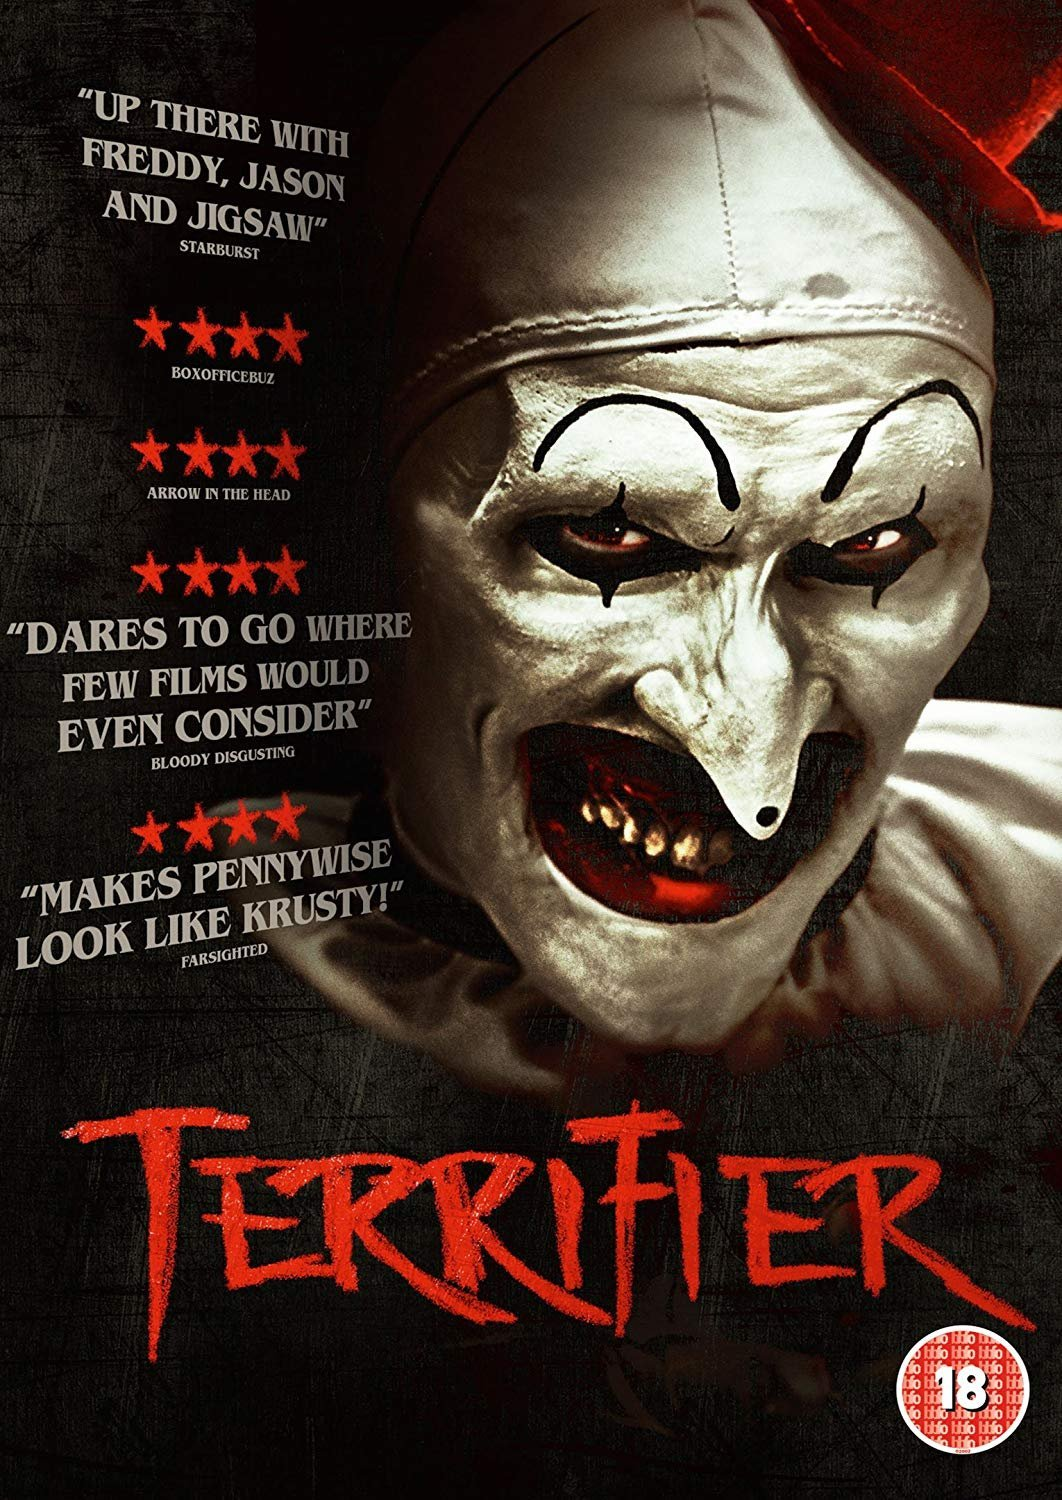 TERRIFIER -Film Horror